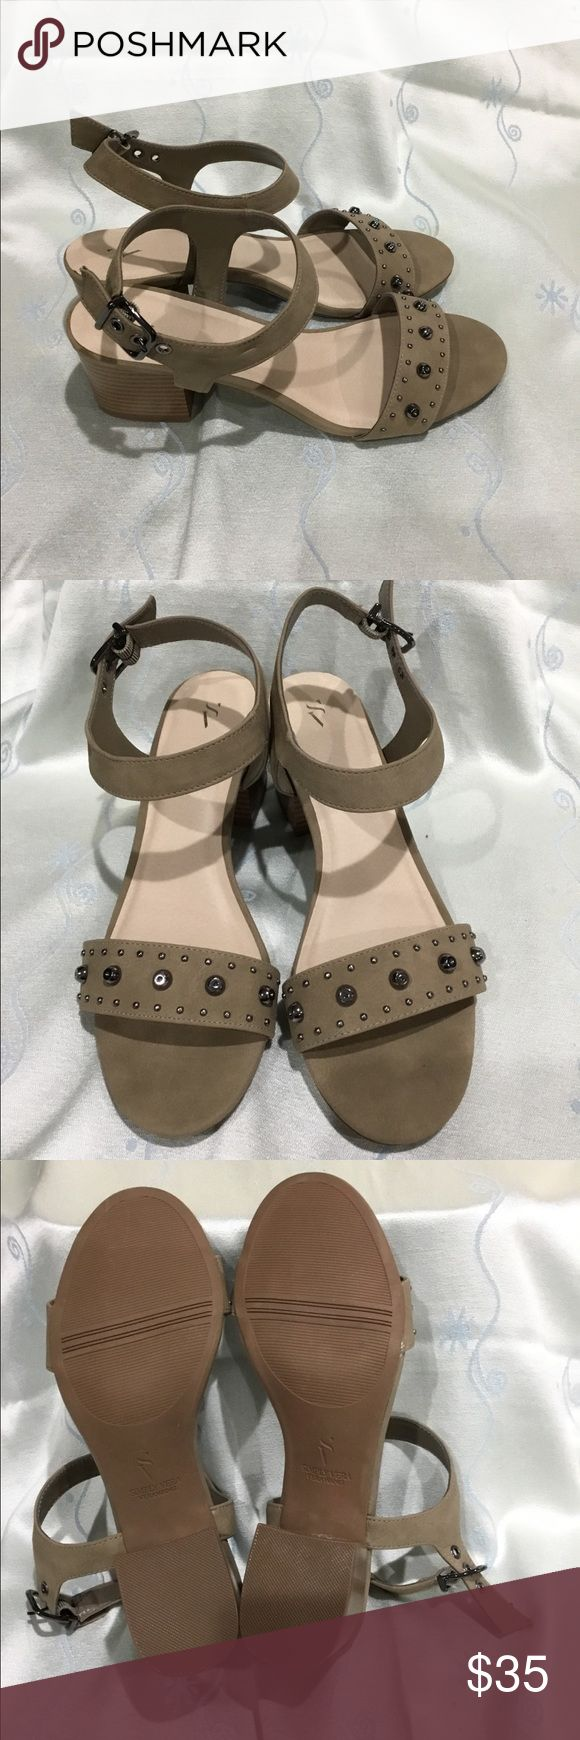 "Simply Vera Wang laurel khaki sandals. Brand new Simply Vera Wang Laurel Khaki Sandals. Features adjustable ankle strap and 2.5"" heel. Simply Vera Vera Wang Shoes Sandals"